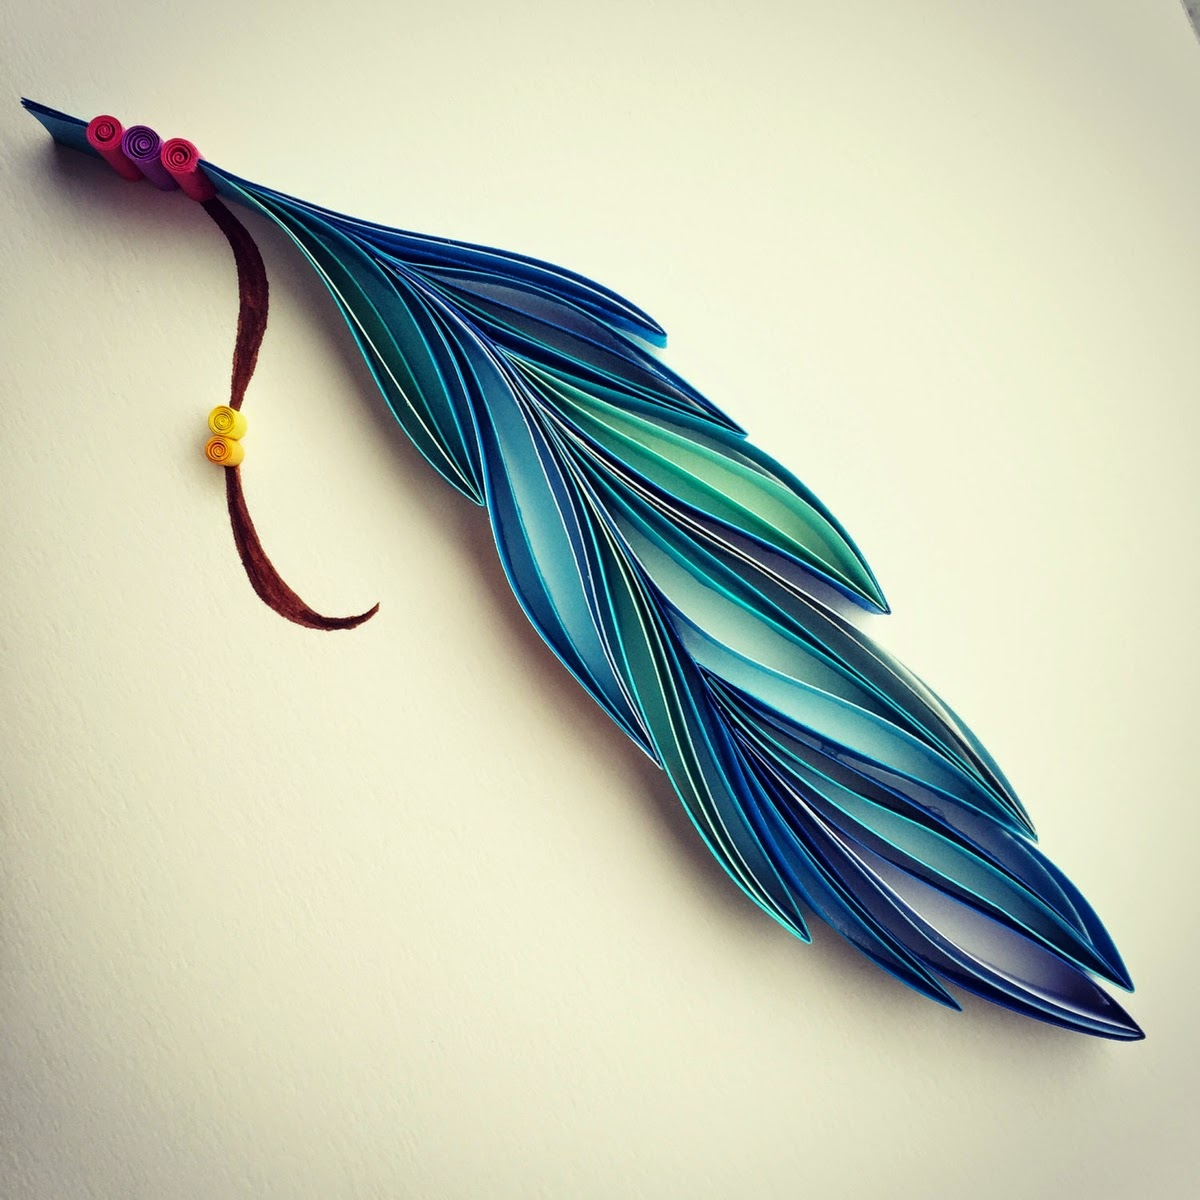 19-Feather-Sena-Runa-Drawing-and-Quilling-a-match-made-in-Heaven-www-designstack-co